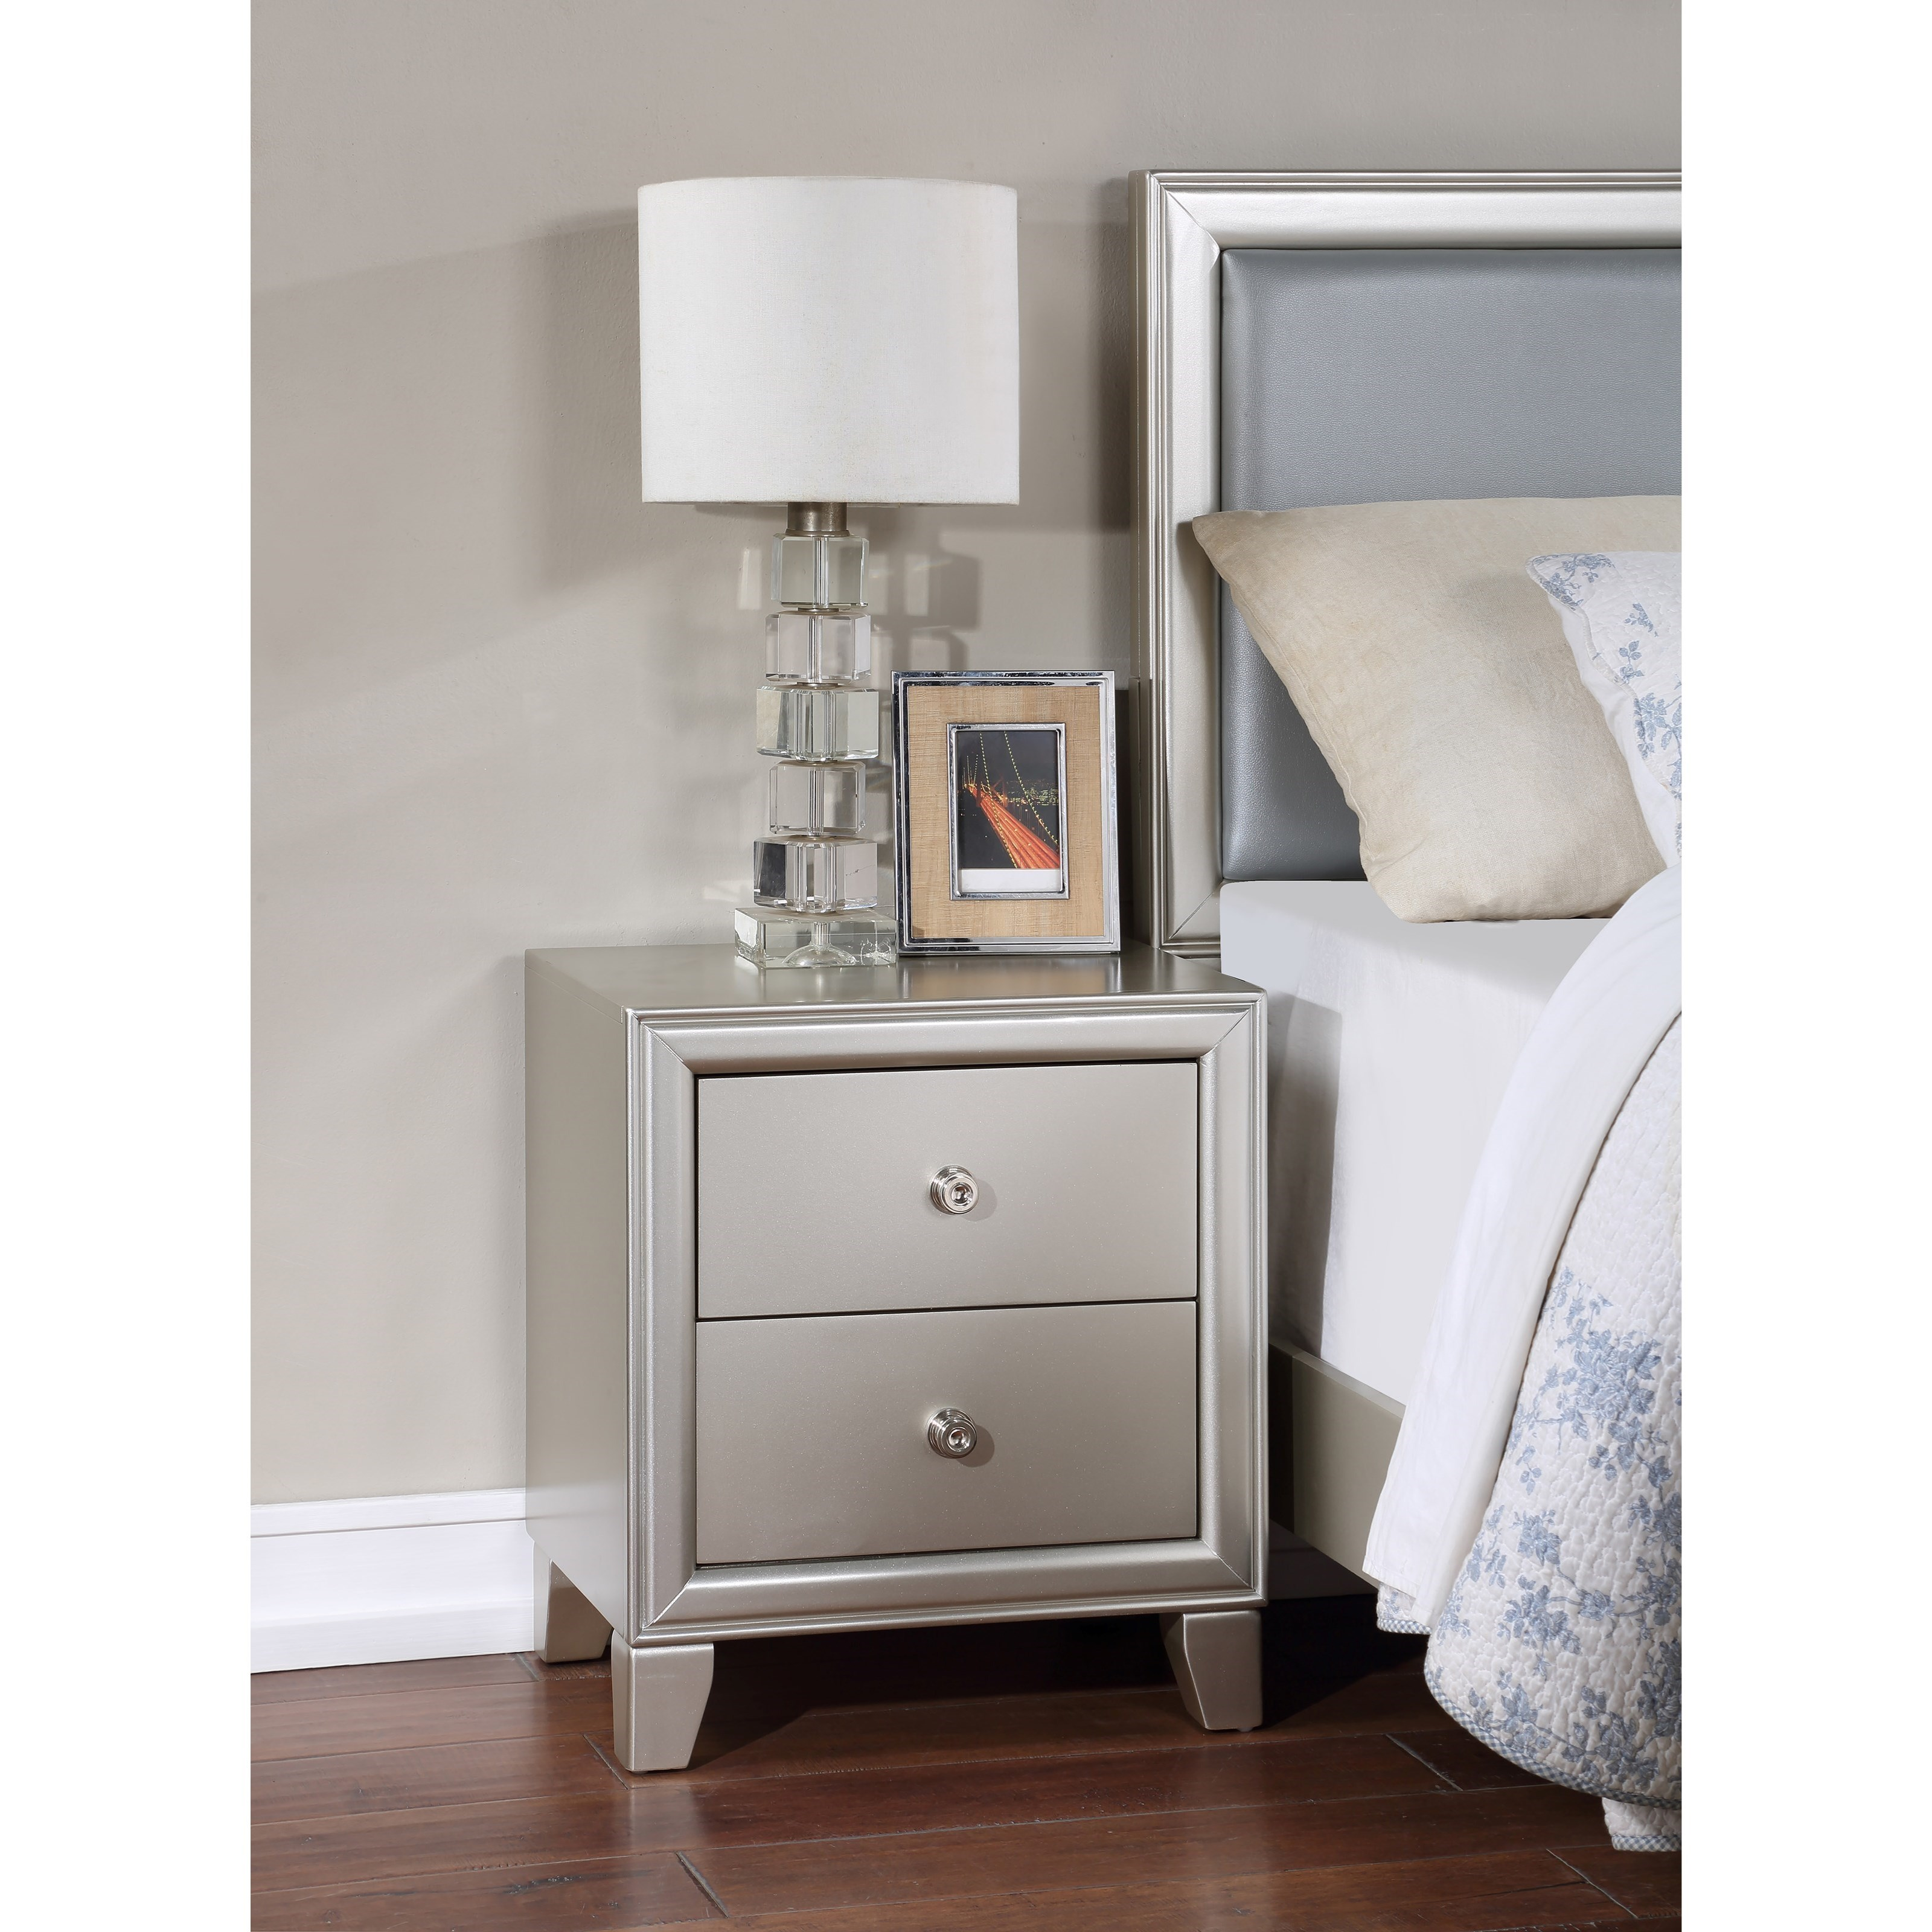 Omni Nightstand by Steve Silver at Standard Furniture